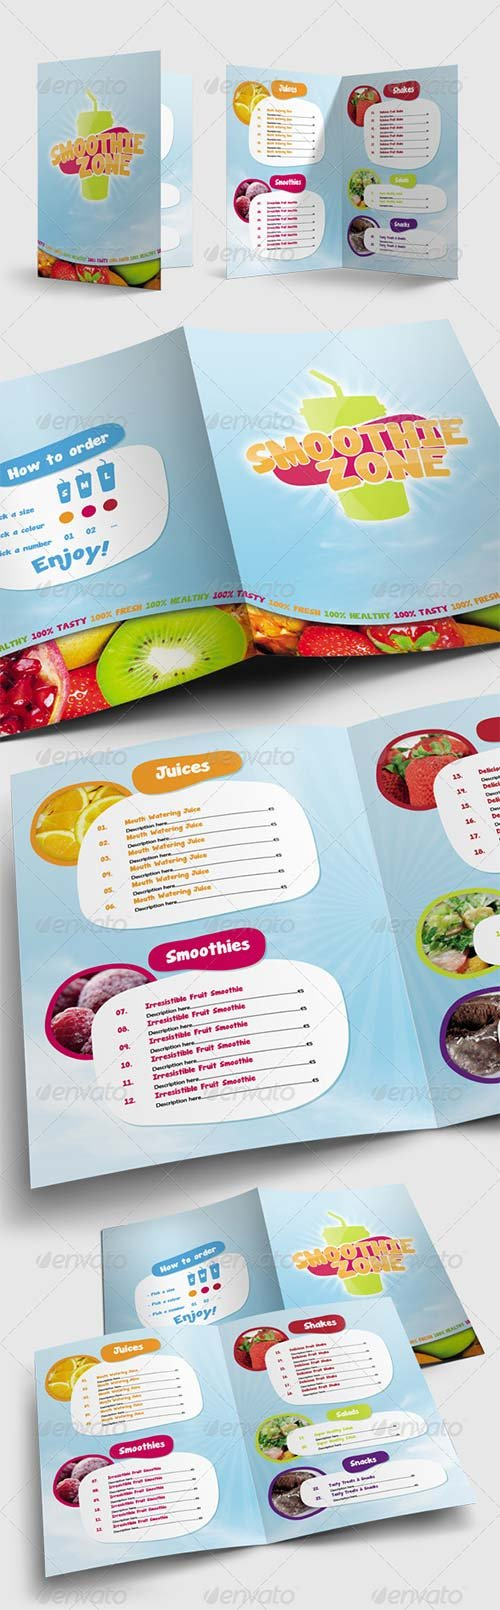 GraphicRiver Juice and Smoothie Menu - Smoothie Zone